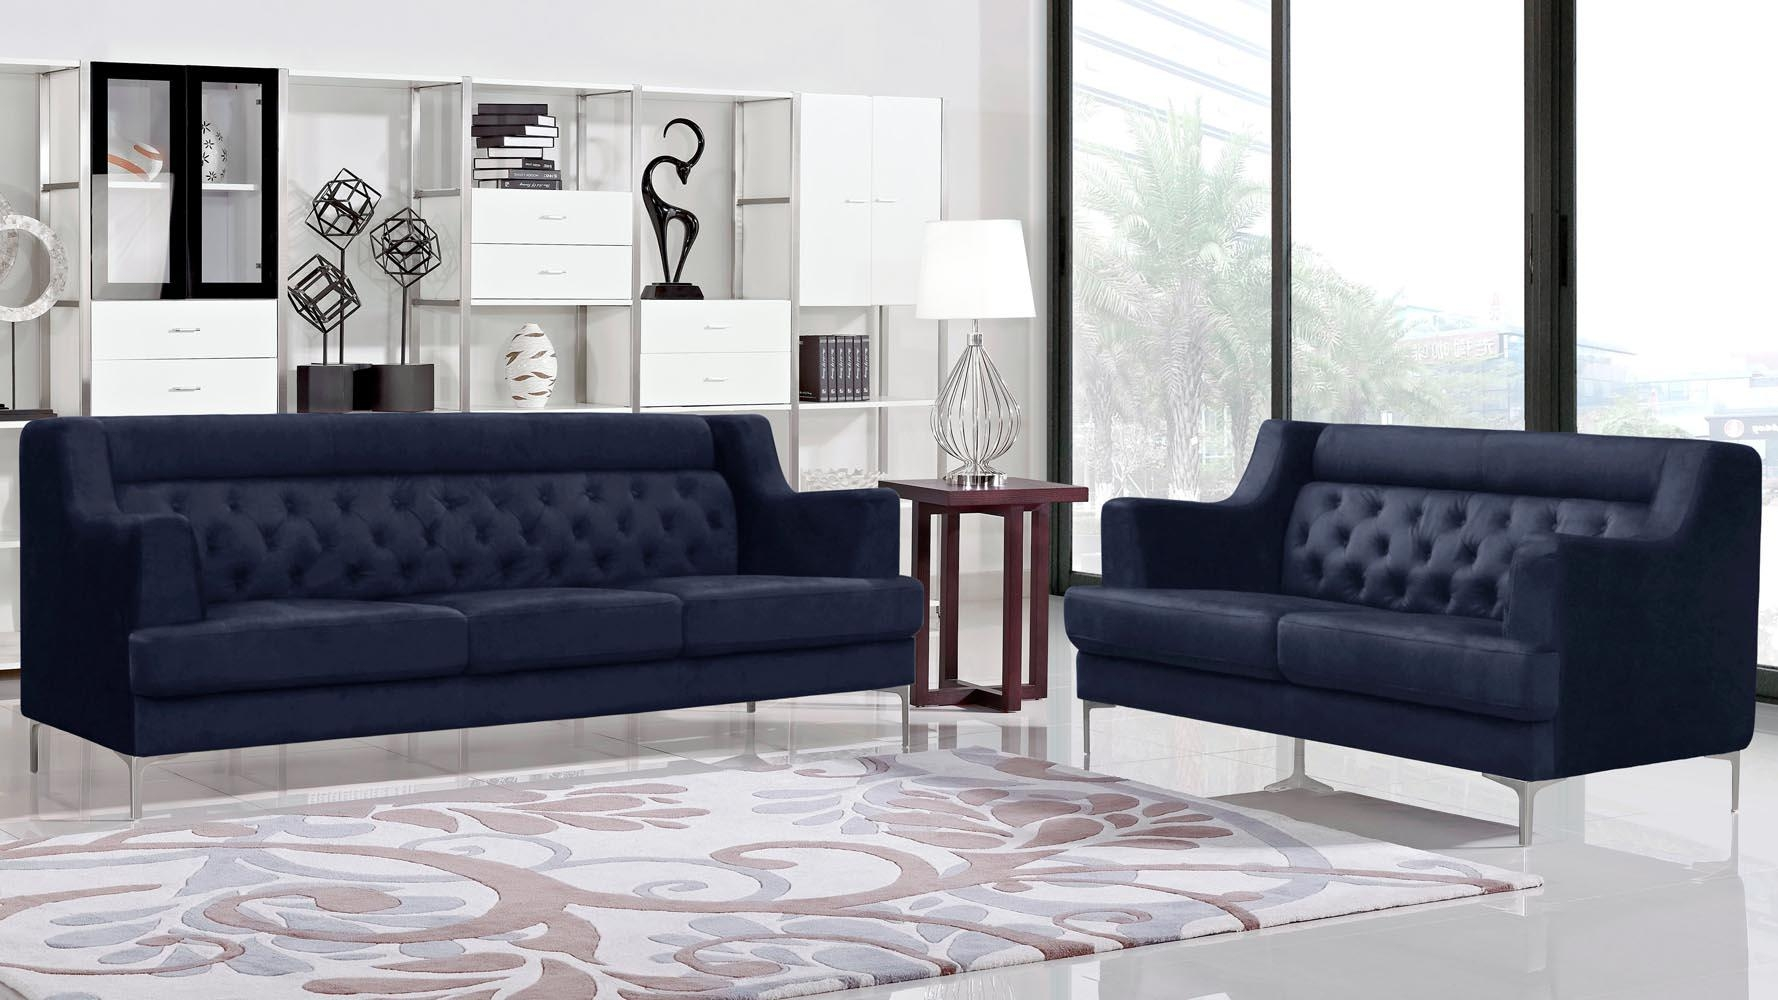 Zara Fabric Tufted Sofa With Chrome Legs – Navy Blue | Zuri Furniture In Sofas With Chrome Legs (Photo 13 of 20)